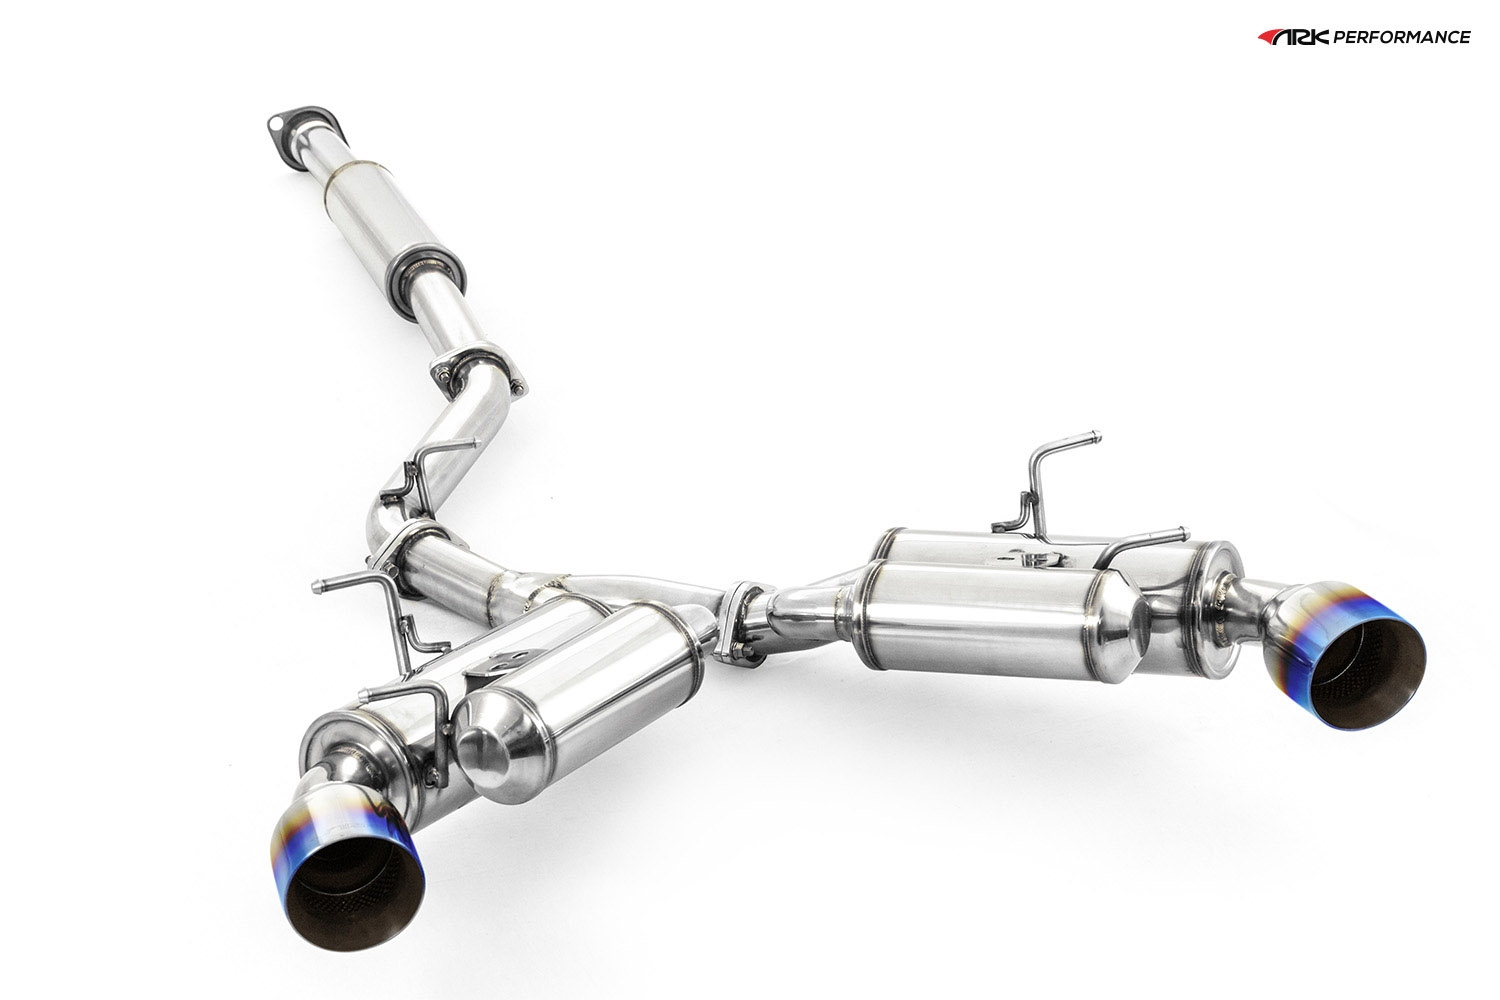 Ark Performance Stainless Steel GRiP Cat-Back Exhaust System 2.5in Pipe w/ 4.5 Burnt Single Tip, Dual Exit - Toyota GT86 13+ 2.0L H4 ZN6